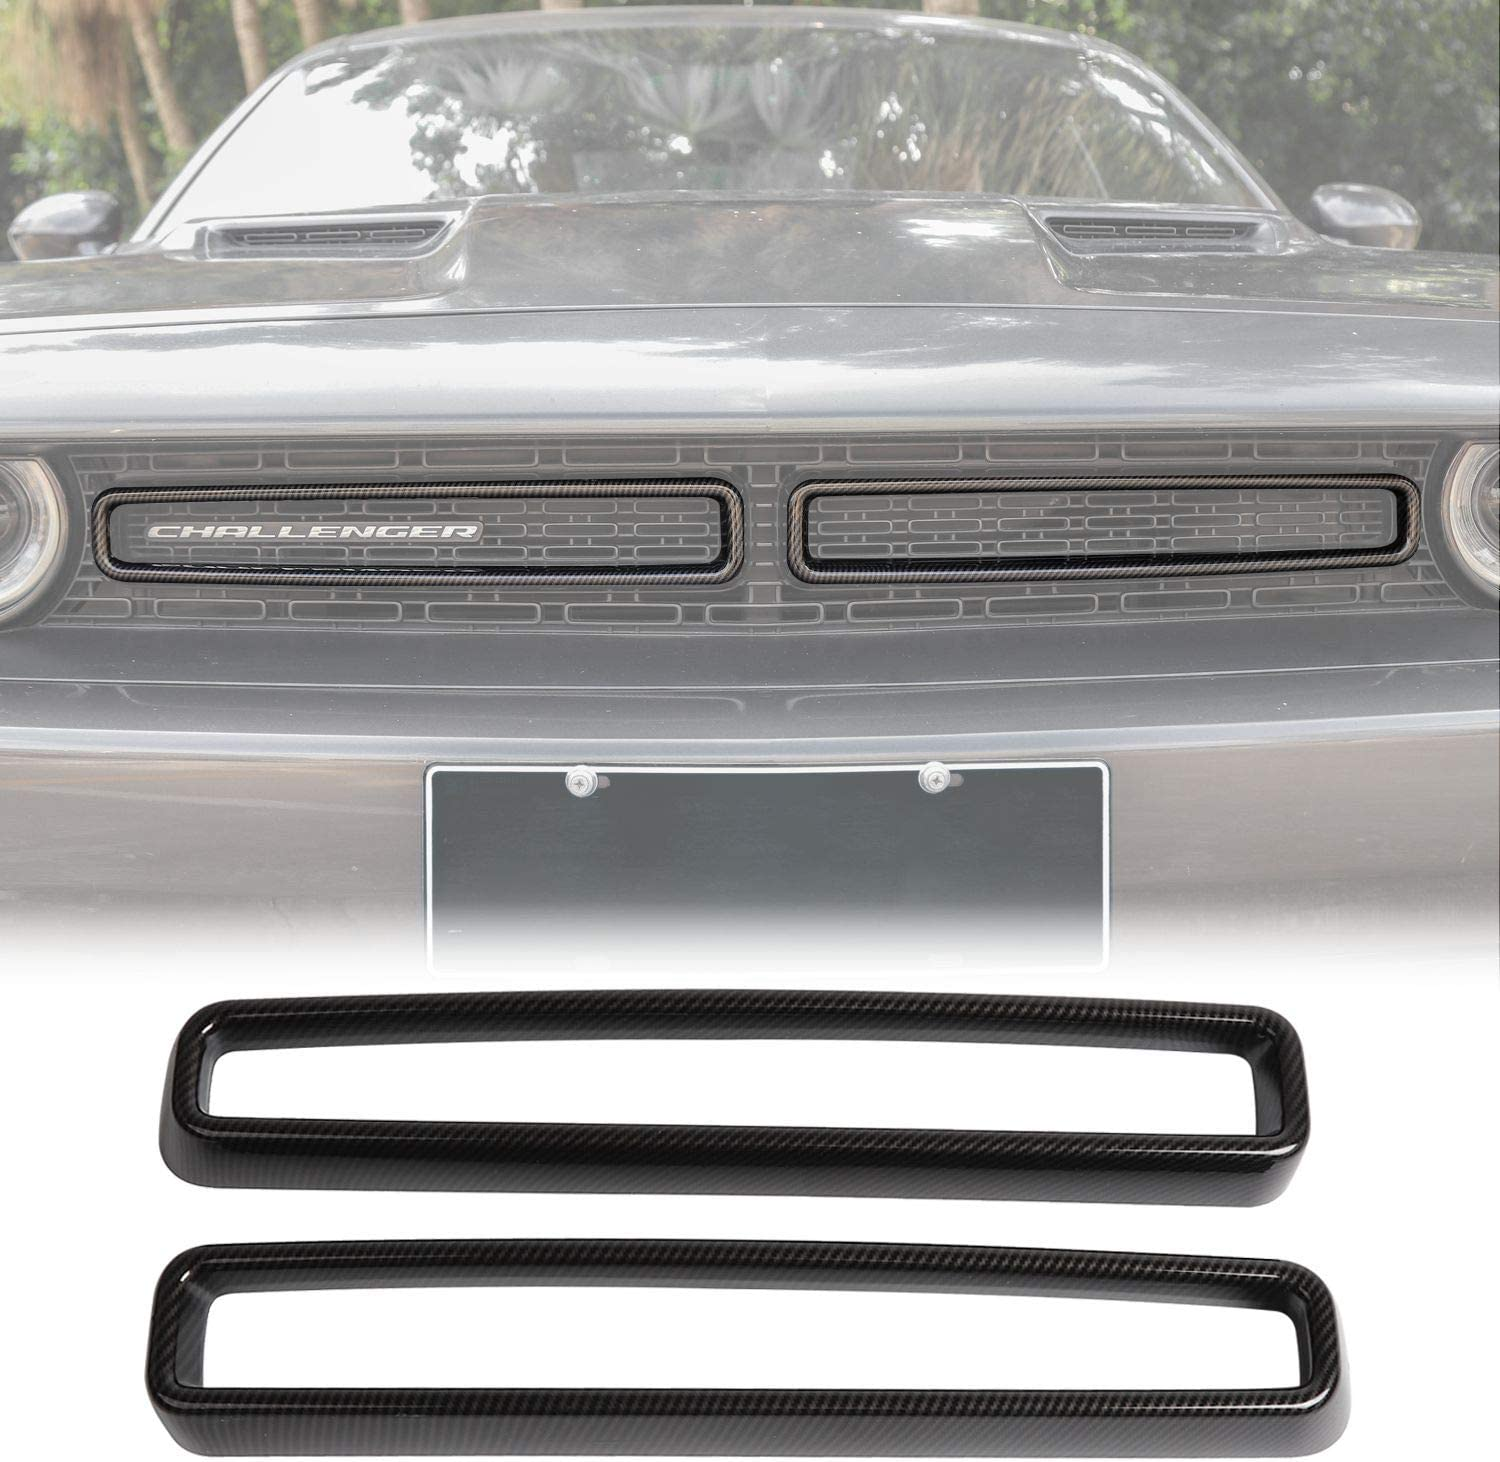 Voodonala for Challenger Front Grill Trim Ac Mesh Inserts Grille Max 44% OFF Year-end gift